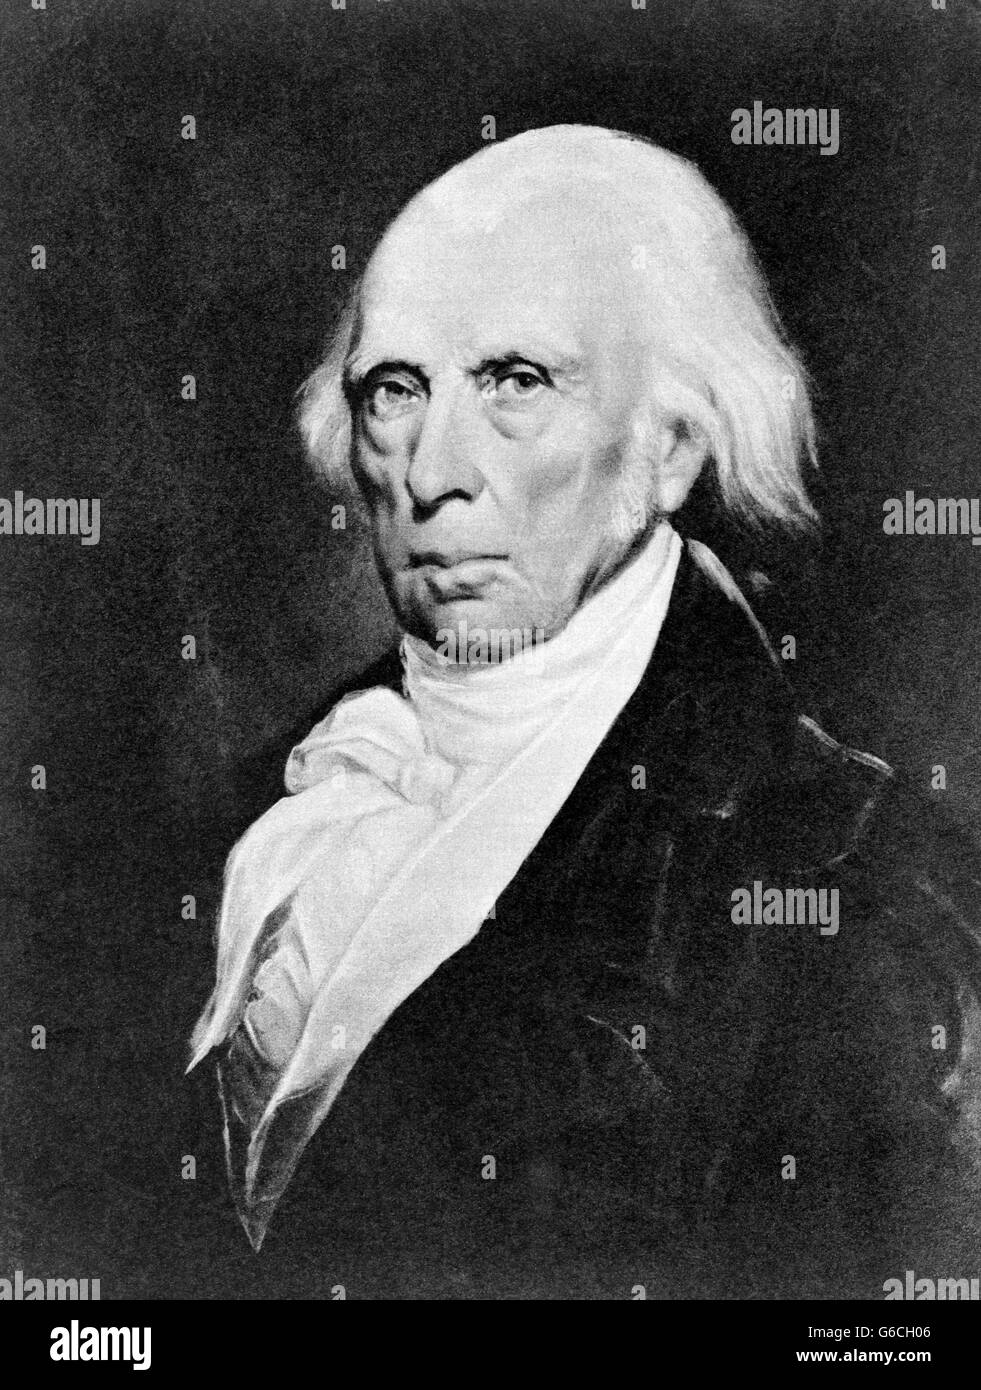 1830s PORTRAIT OF JAMES MADISON IN LATER YEARS FOURTH PRESIDENT OF THE UNITED STATES LOOKING AT CAMERA - Stock Image